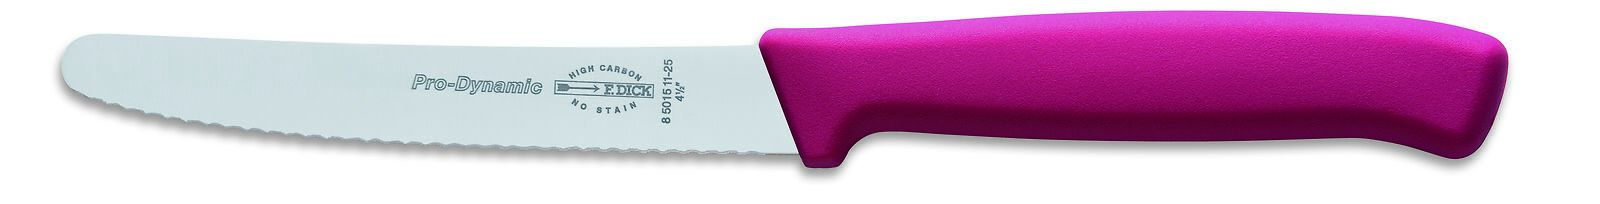 "F. Dick (8501511-25) 4"" Utility Knife, Serrated Edge, Pink Handle, Pro Dynamic-cityfoodequipment.com"